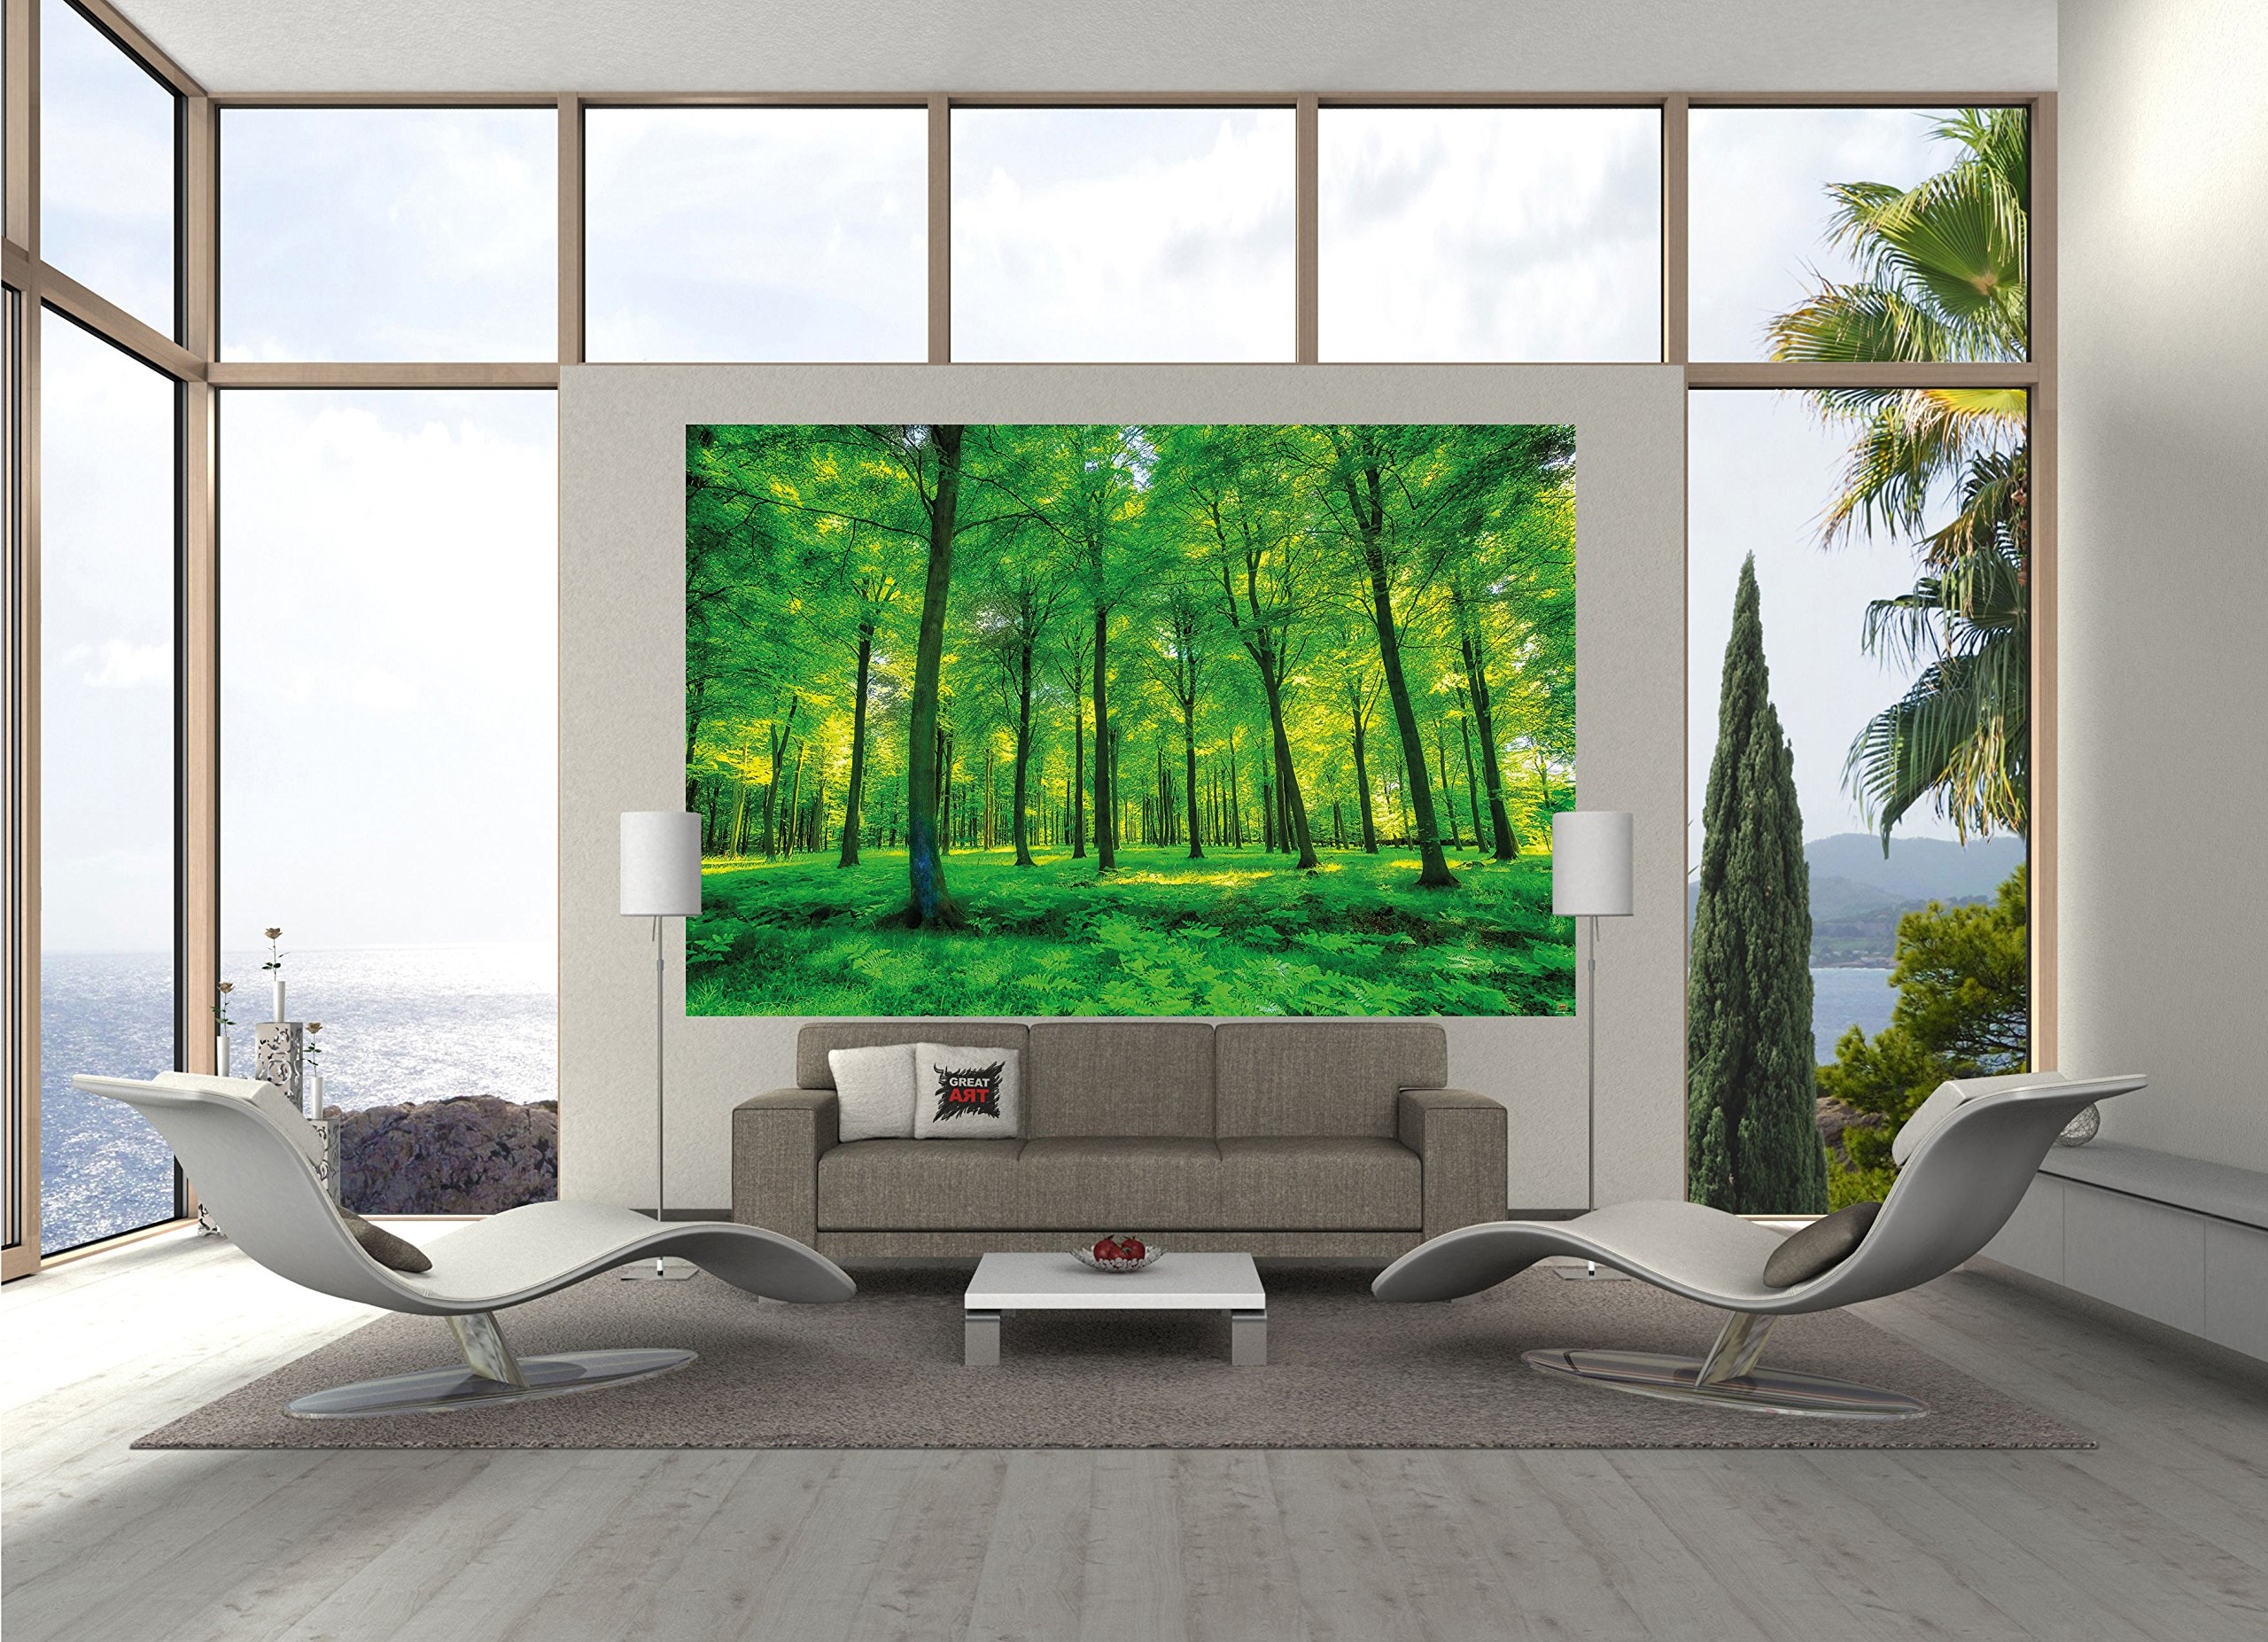 GREAT ART Wallpaper Trees Forest – Nature Wall Photo Decoration Natural Landscape Poster Summer Relax Sun Plants Flora Mural (82.7x55 Inch) by Great Art (Image #2)